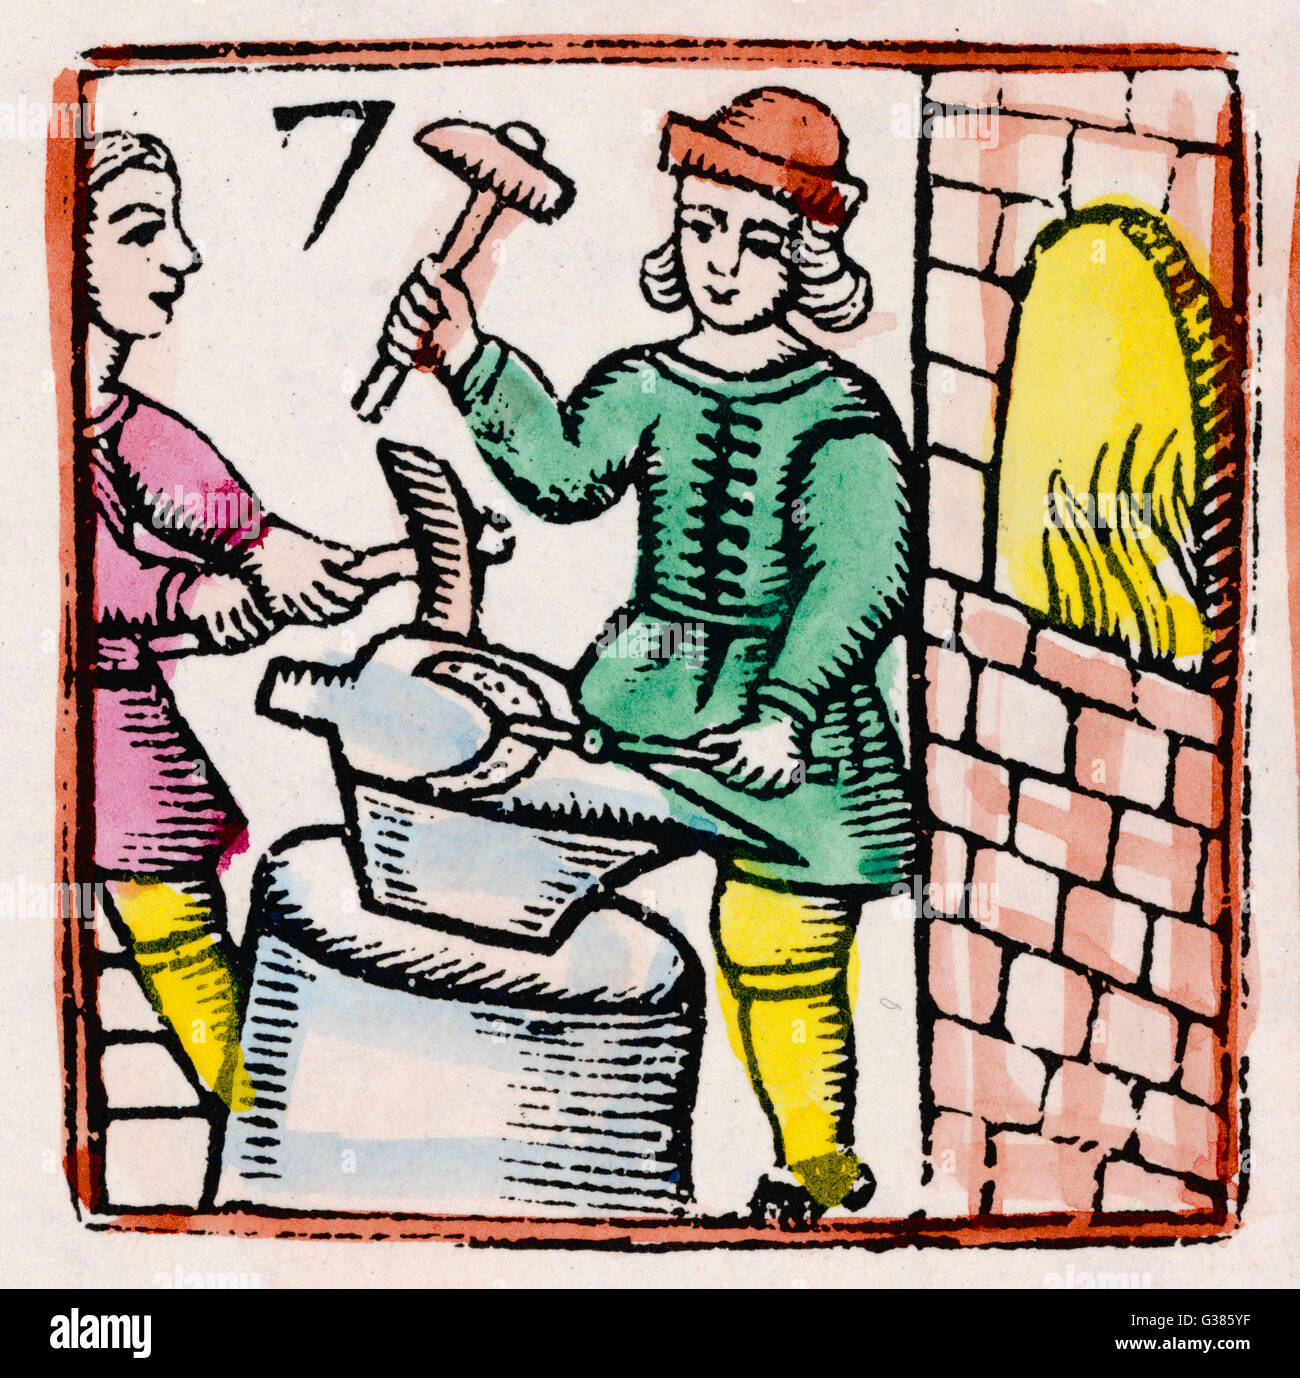 Two blacksmiths work with  hammers at an anvil, while  behind them their furnace  roars.      Date: 17th century - Stock Image